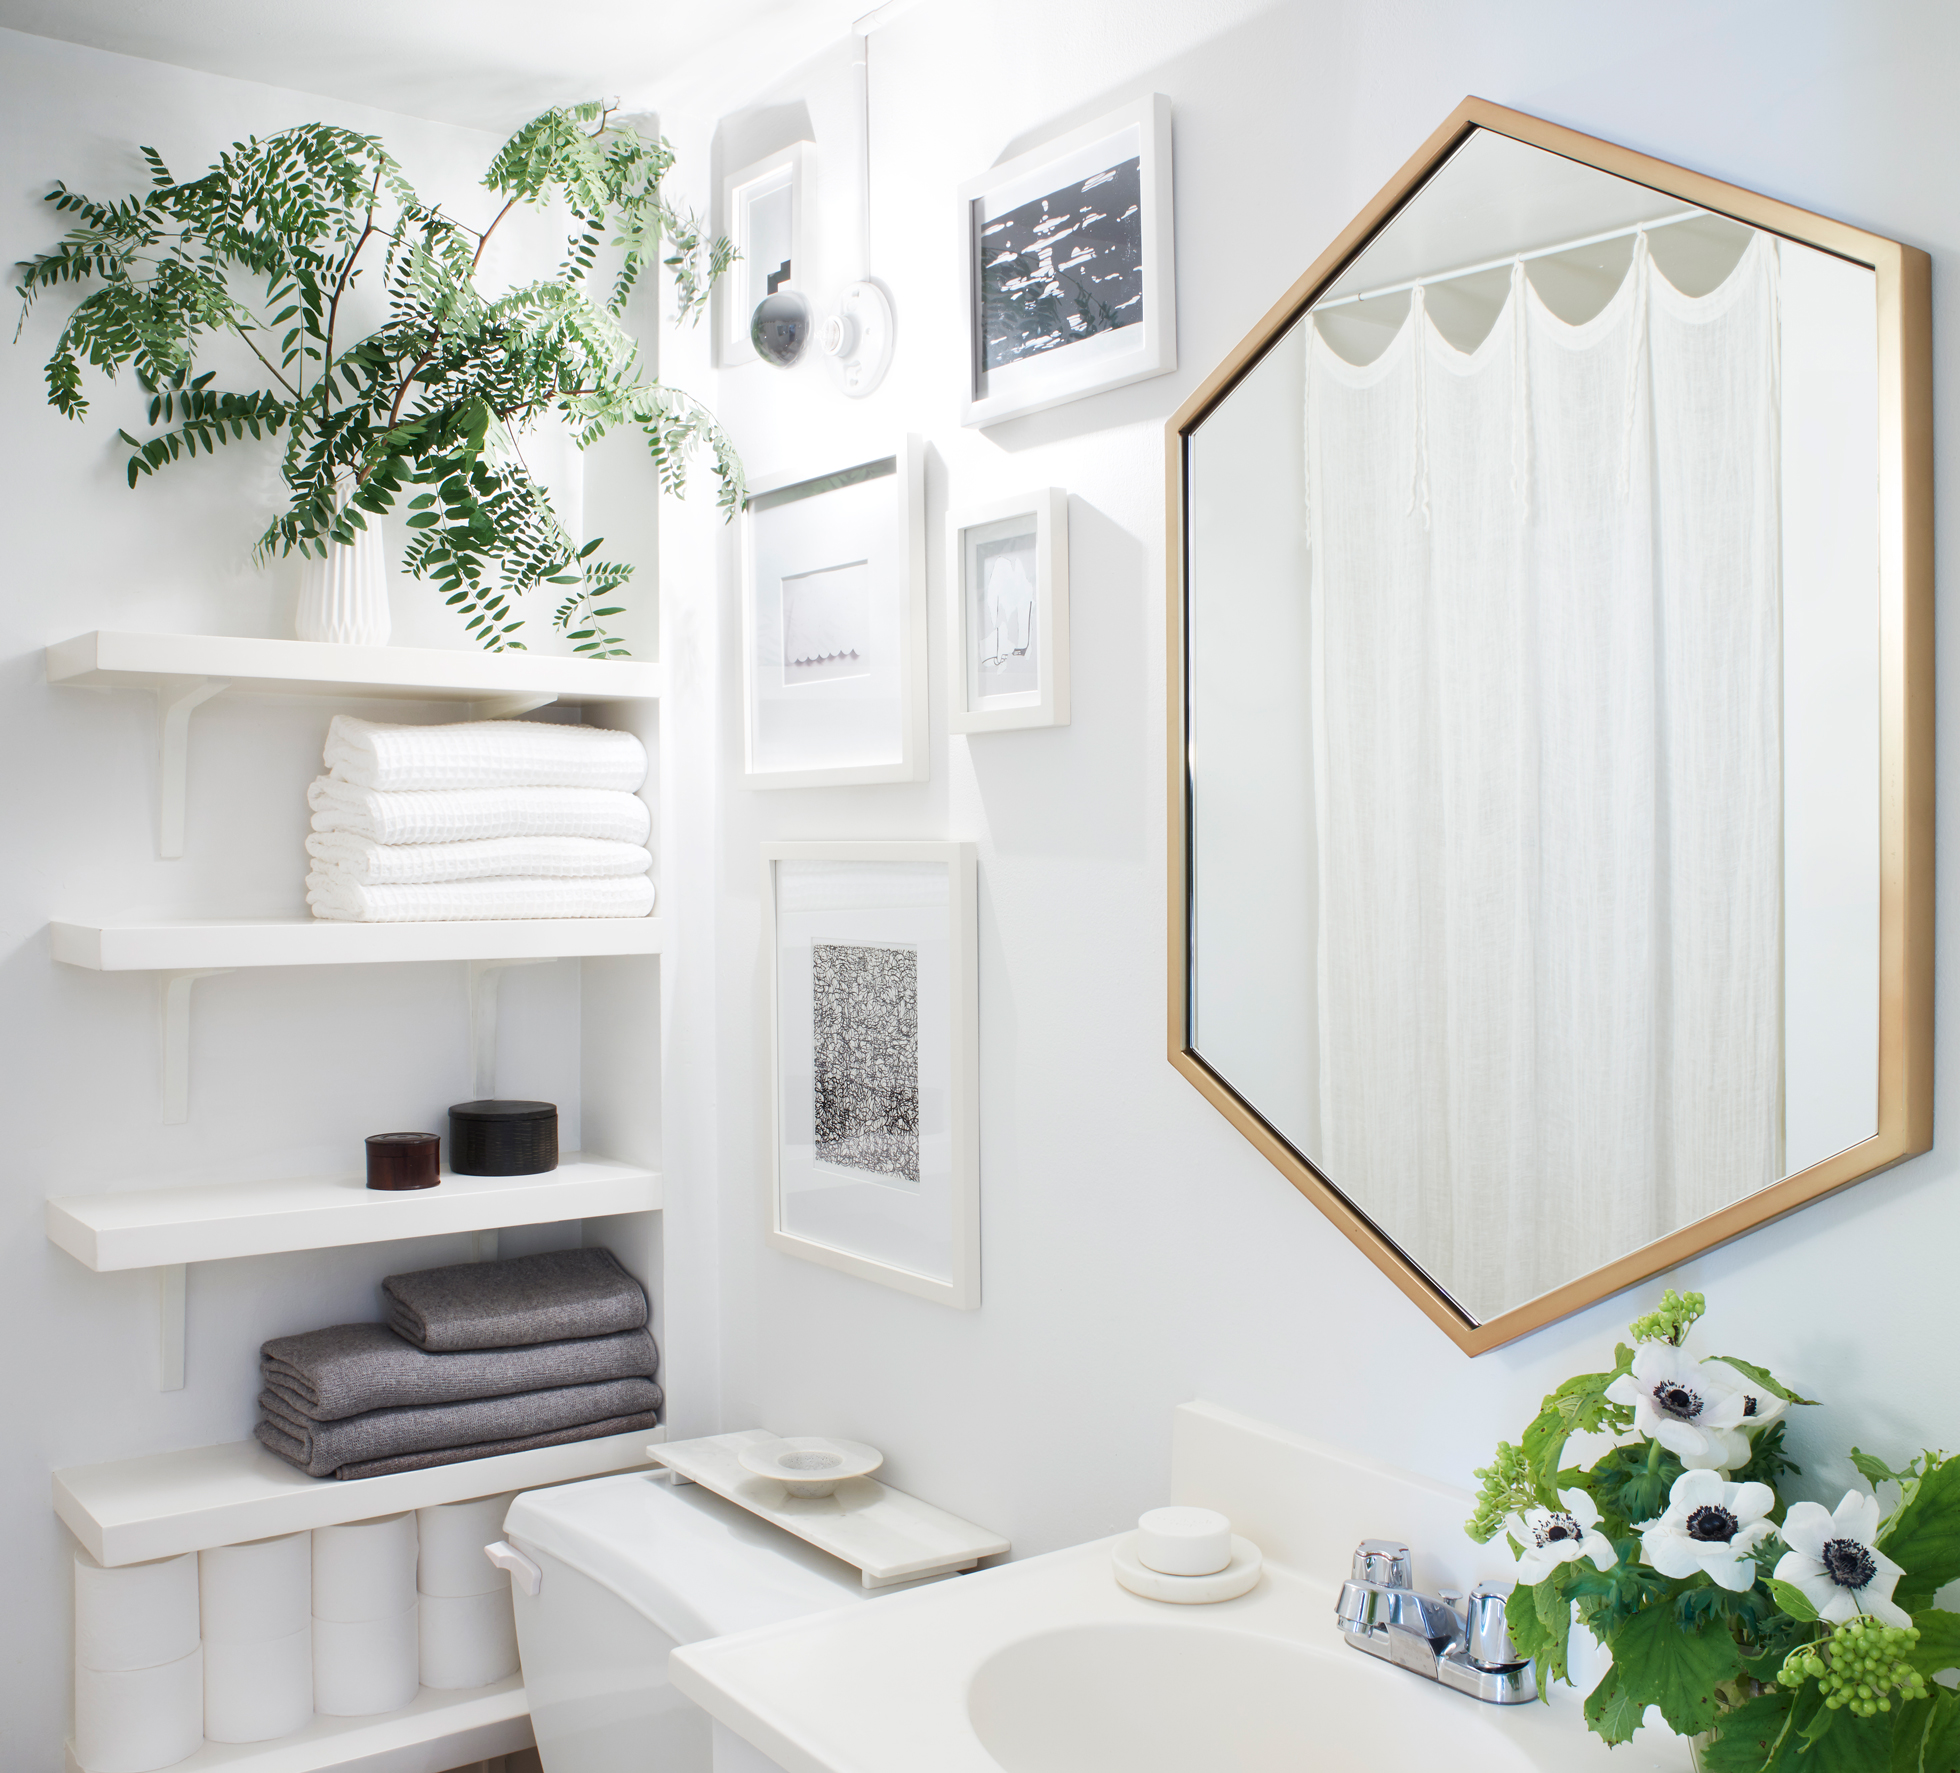 A bright white bathroom with open shelving